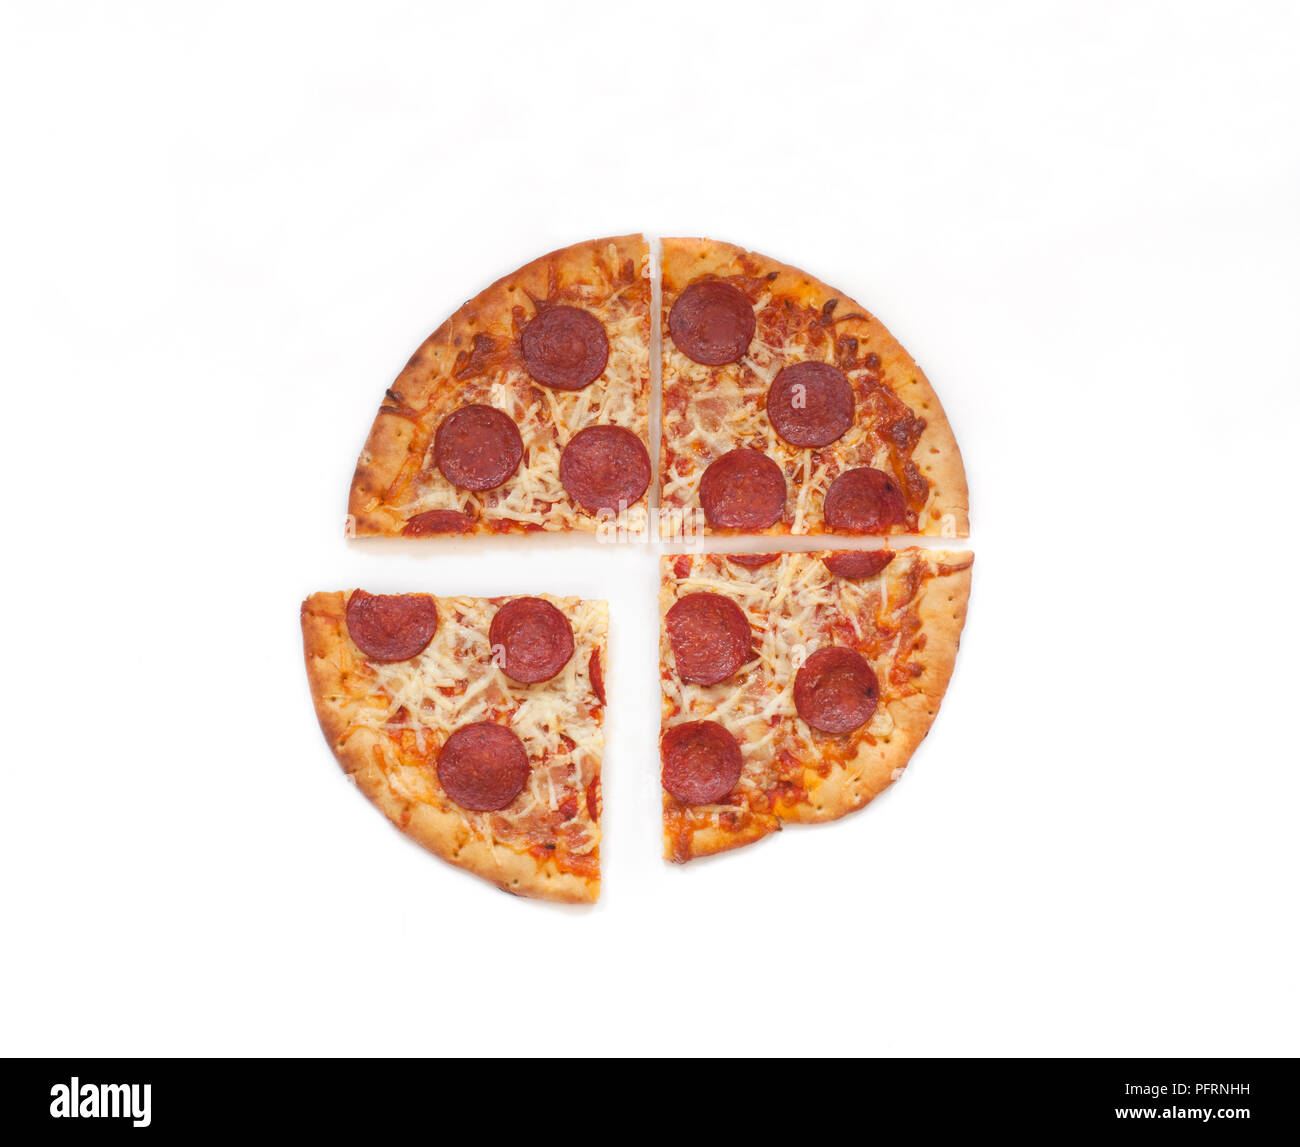 Pepperoni pizza cut into four quarters, one slice slightly removed from the others - Stock Image